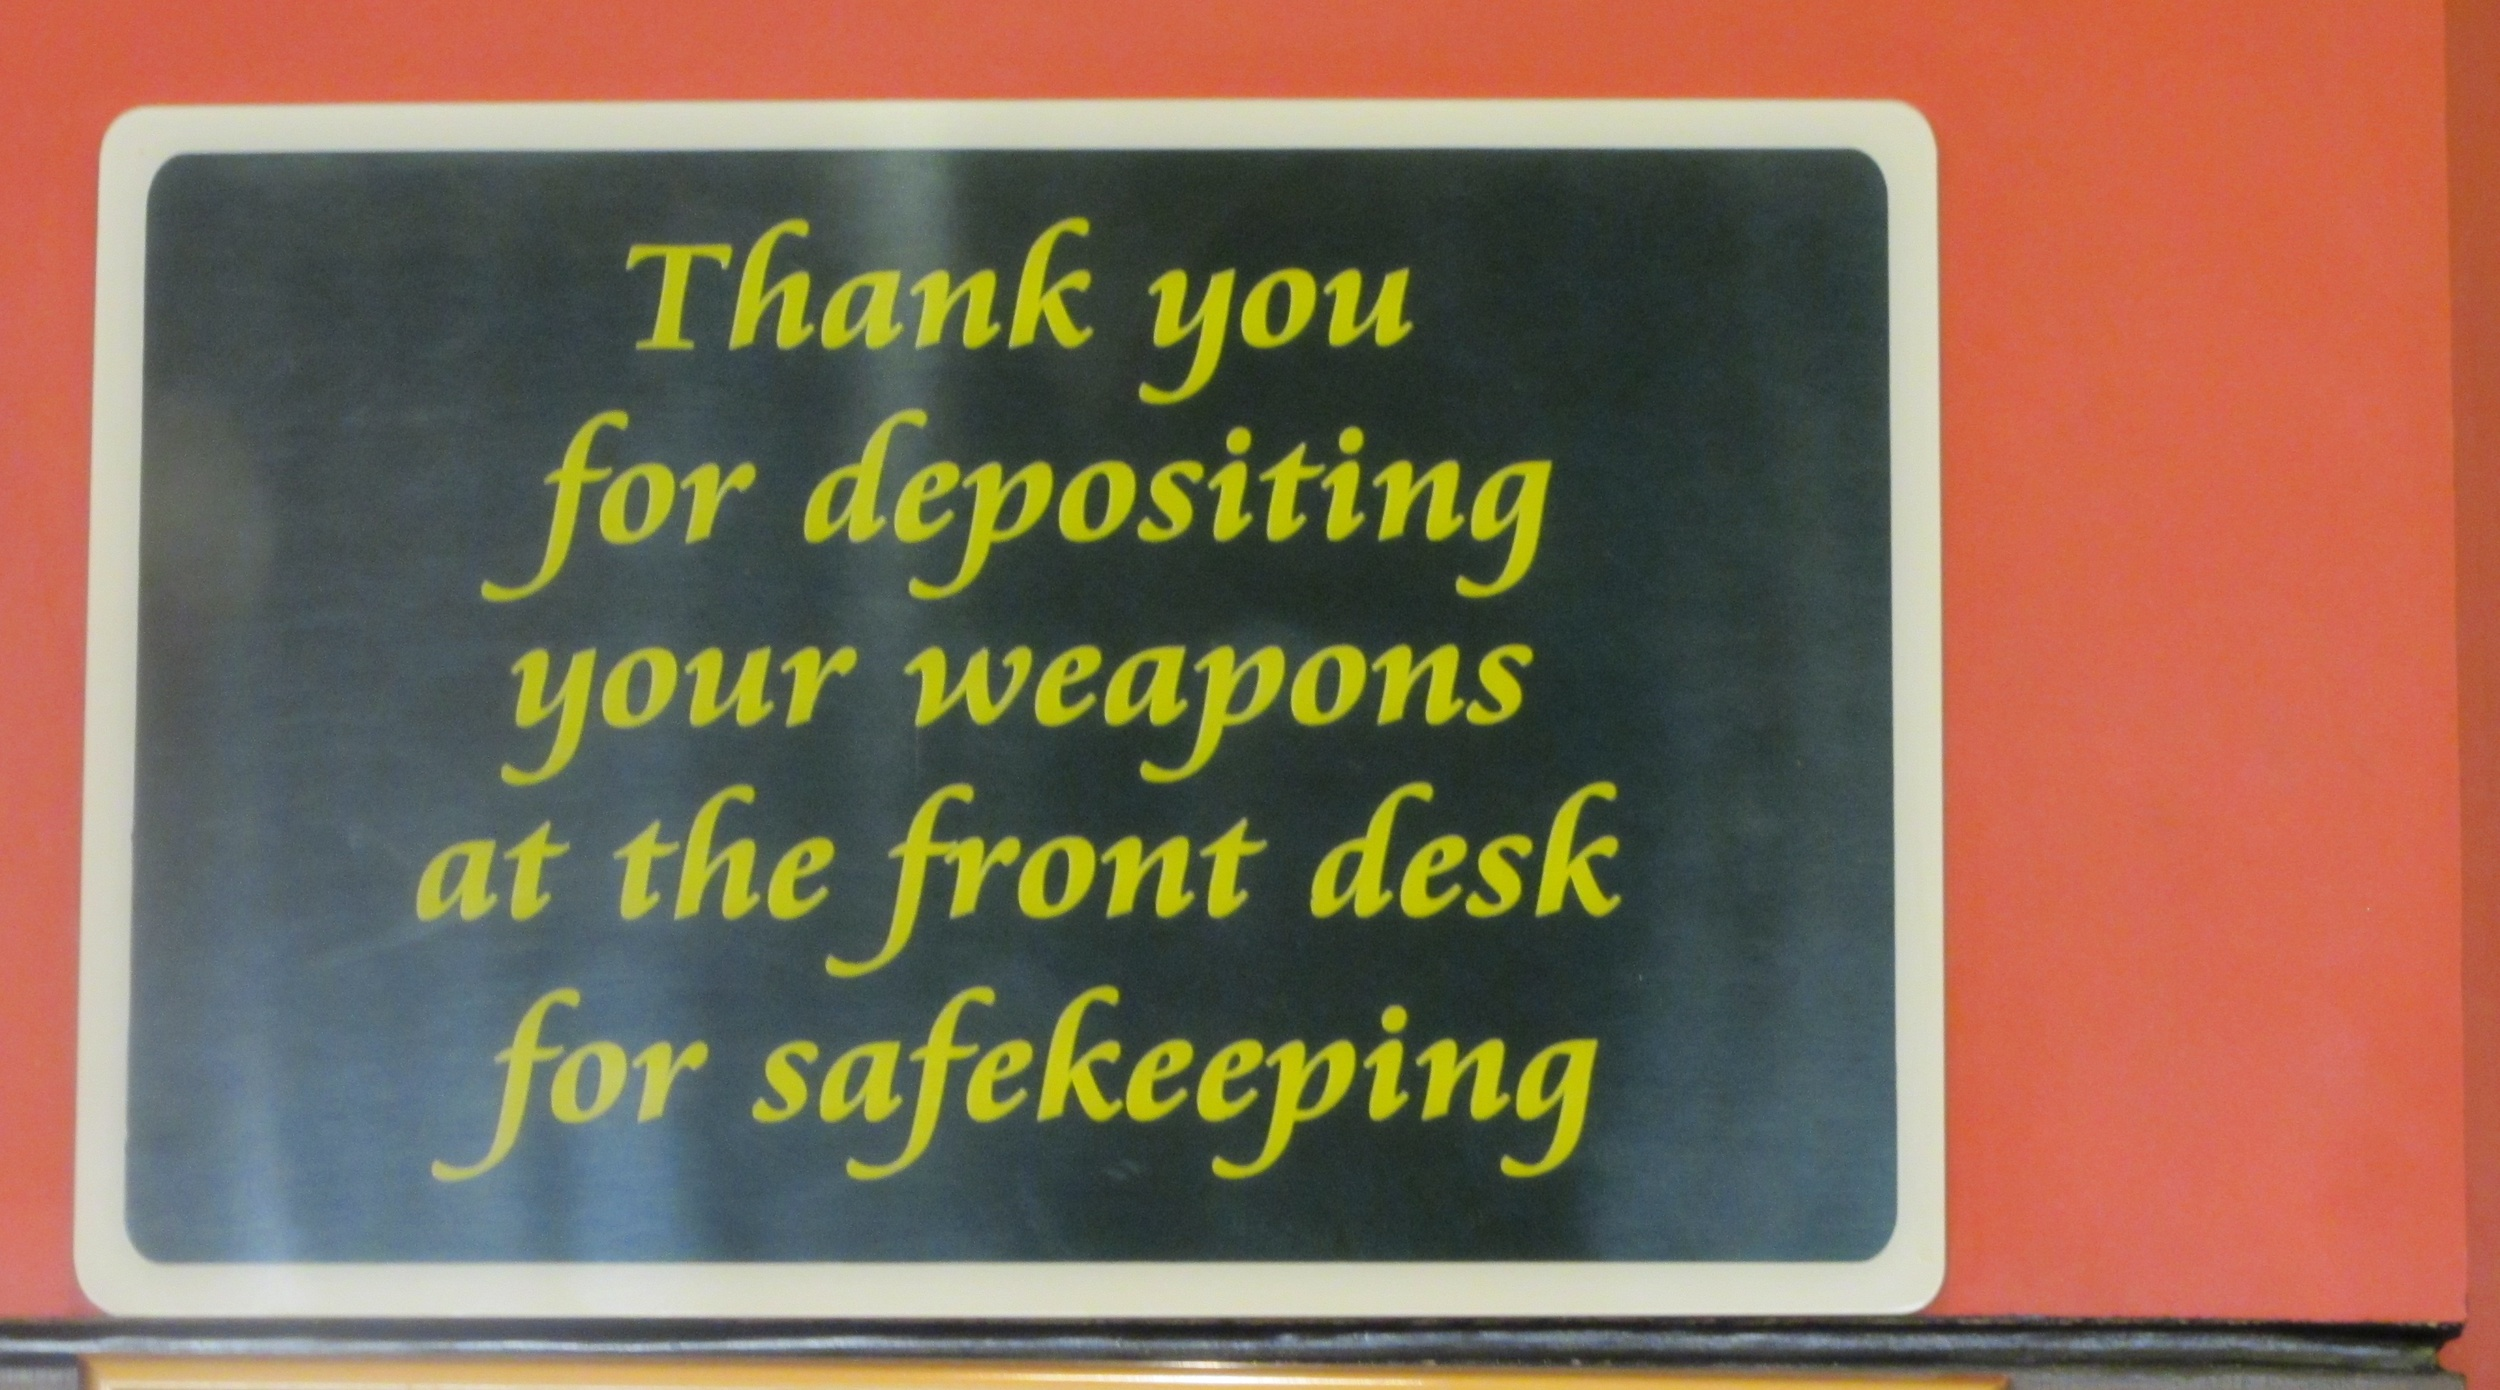 """The surprising hotel counter sign: """"Thank you for depositing your weapons at the front desk for safekeeping."""" (Photo by Lisa Suguitan Melnick)"""